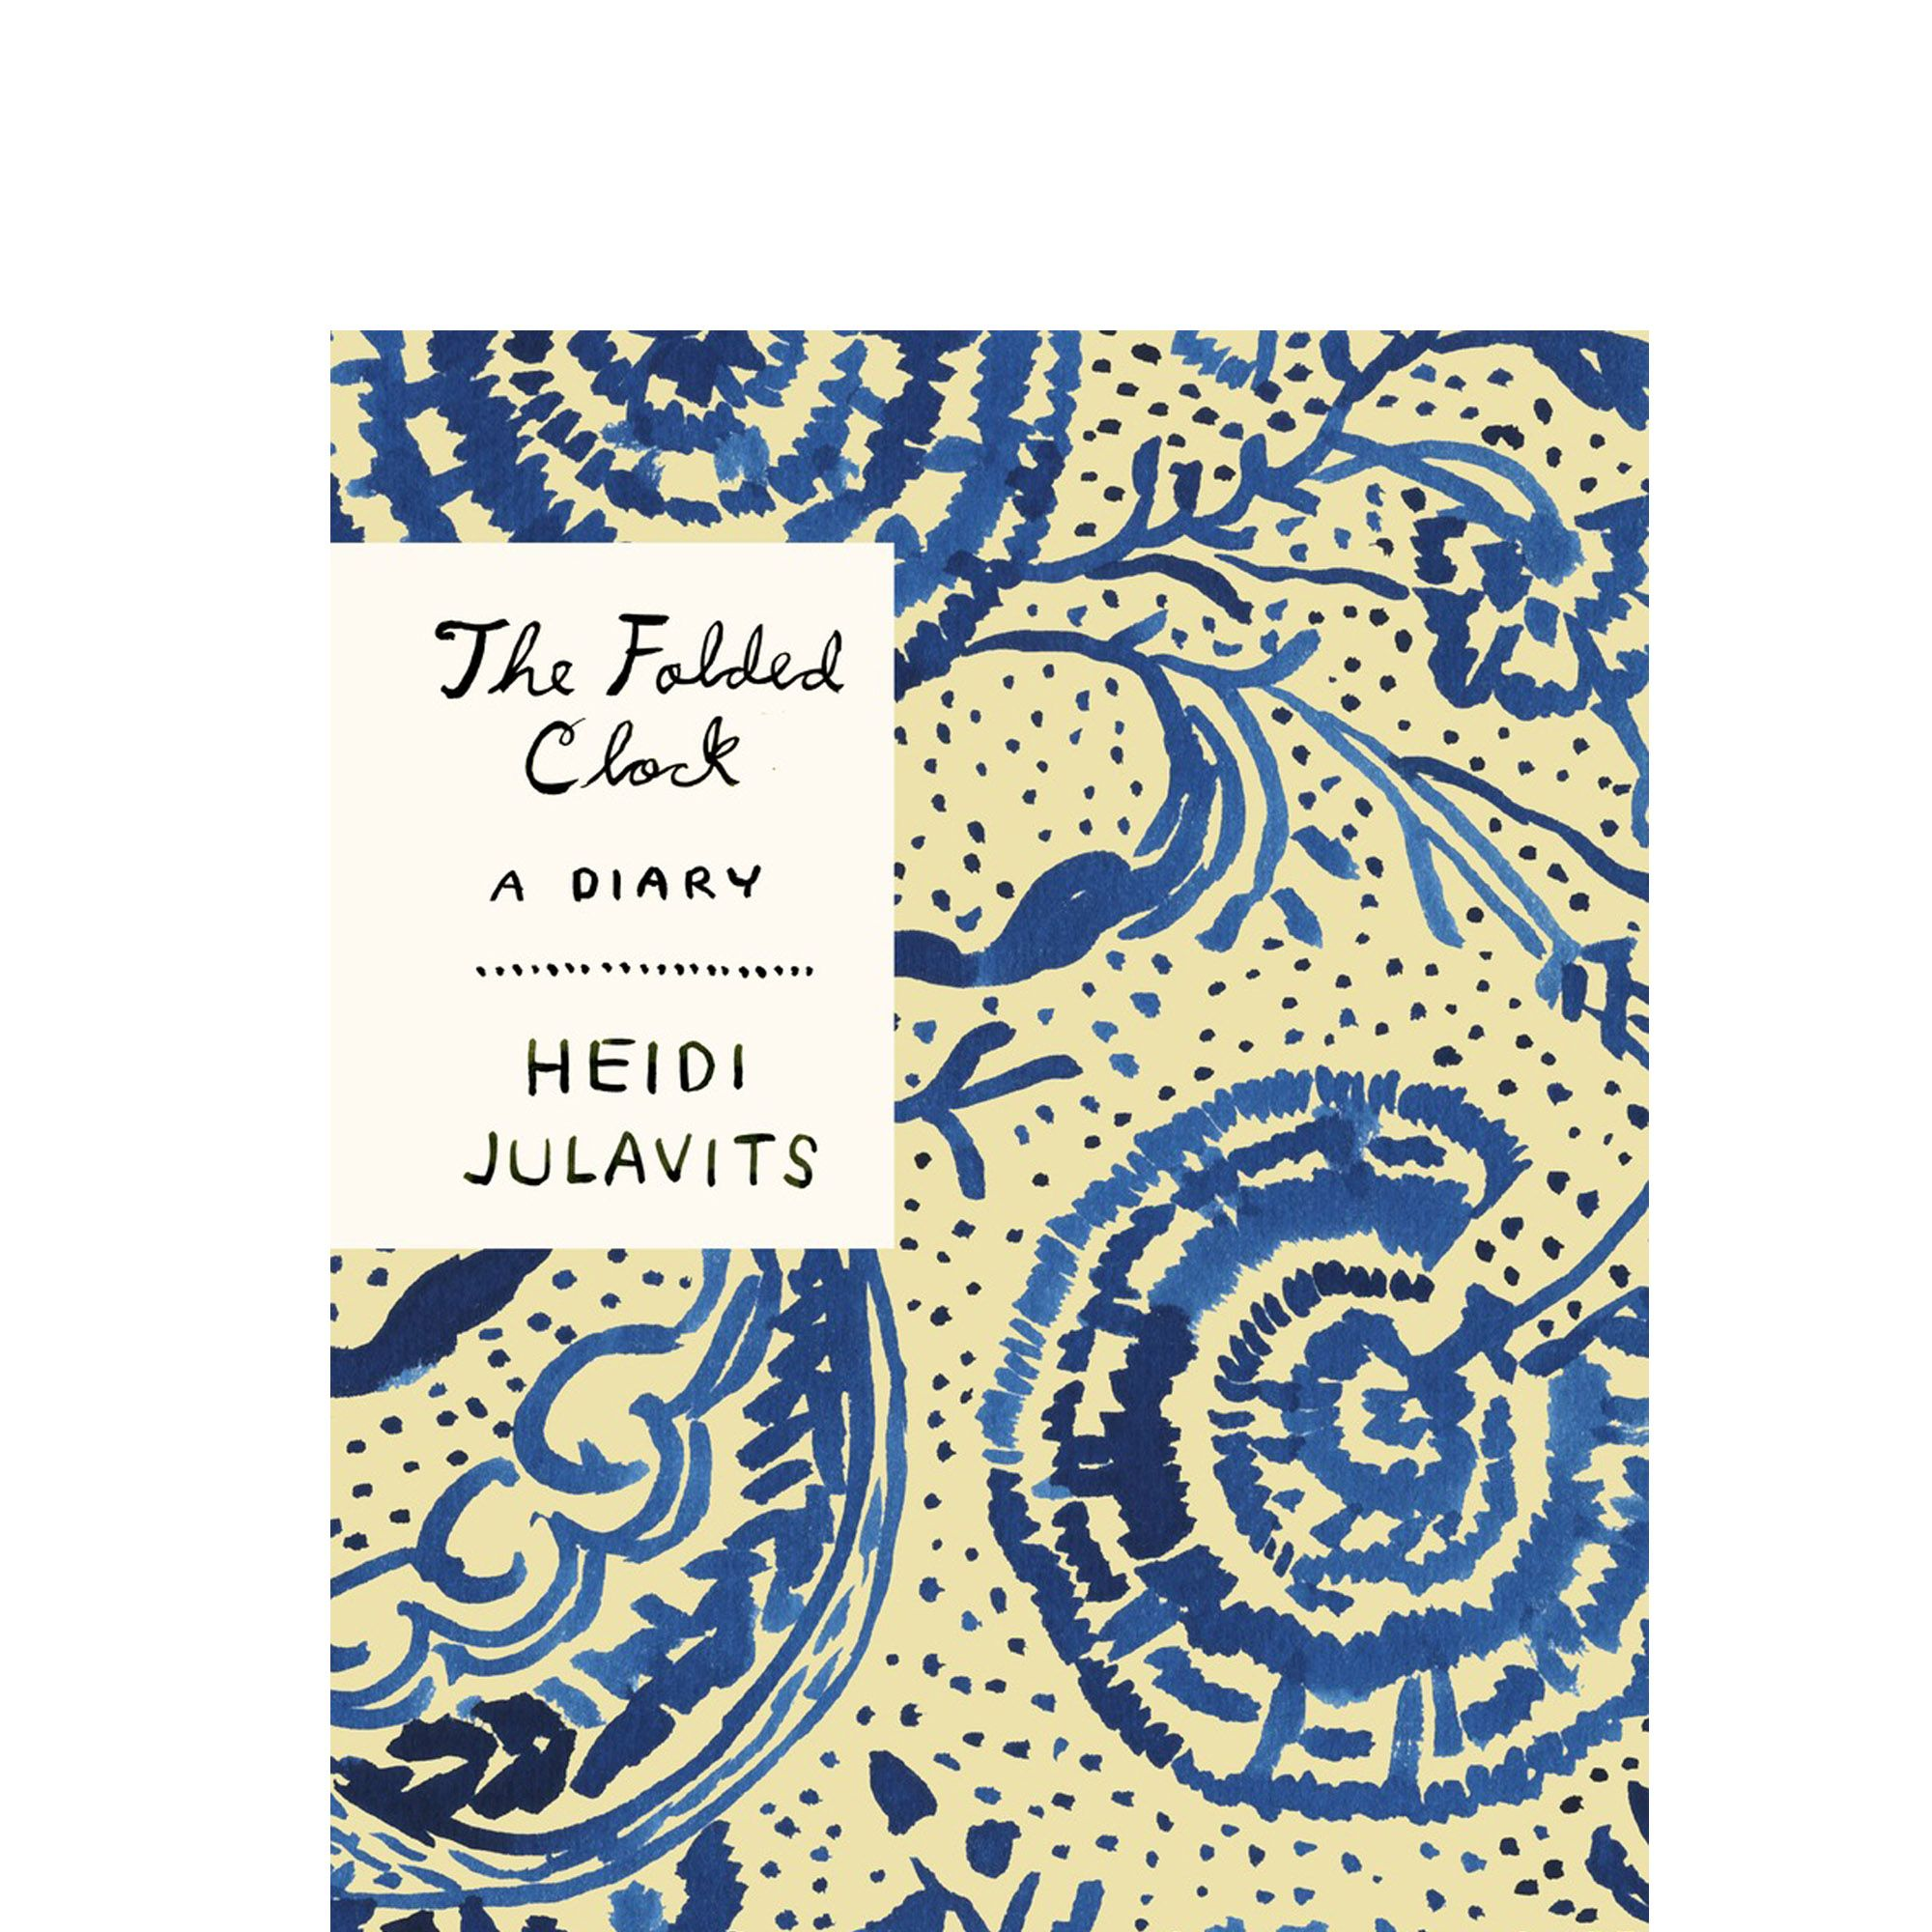 """Looking back at her girlhood diaries, Heidi Julavits discovered a montage of anxieties about academic success, beauty, boys and popularity. """"I want to good-naturedly laugh at this person,"""" she confesses, """"I want to but I can't. What she wanted then is scarcely different from what I want today."""" In <a target=""""_blank"""" href=""""http://www.amazon.com/The-Folded-Clock-A-Diary/dp/0385538987""""><em>The Folded Clock</em></a>, Julavits revisits the art of the daily chronicle from the perspective of an adult. Keeping a journal every day for one year, she contemplates issues of aging, sex and marriage, parenting, ambition, and the possibility of who she might have become. <em>Out with Doubleday April 7.</em>"""